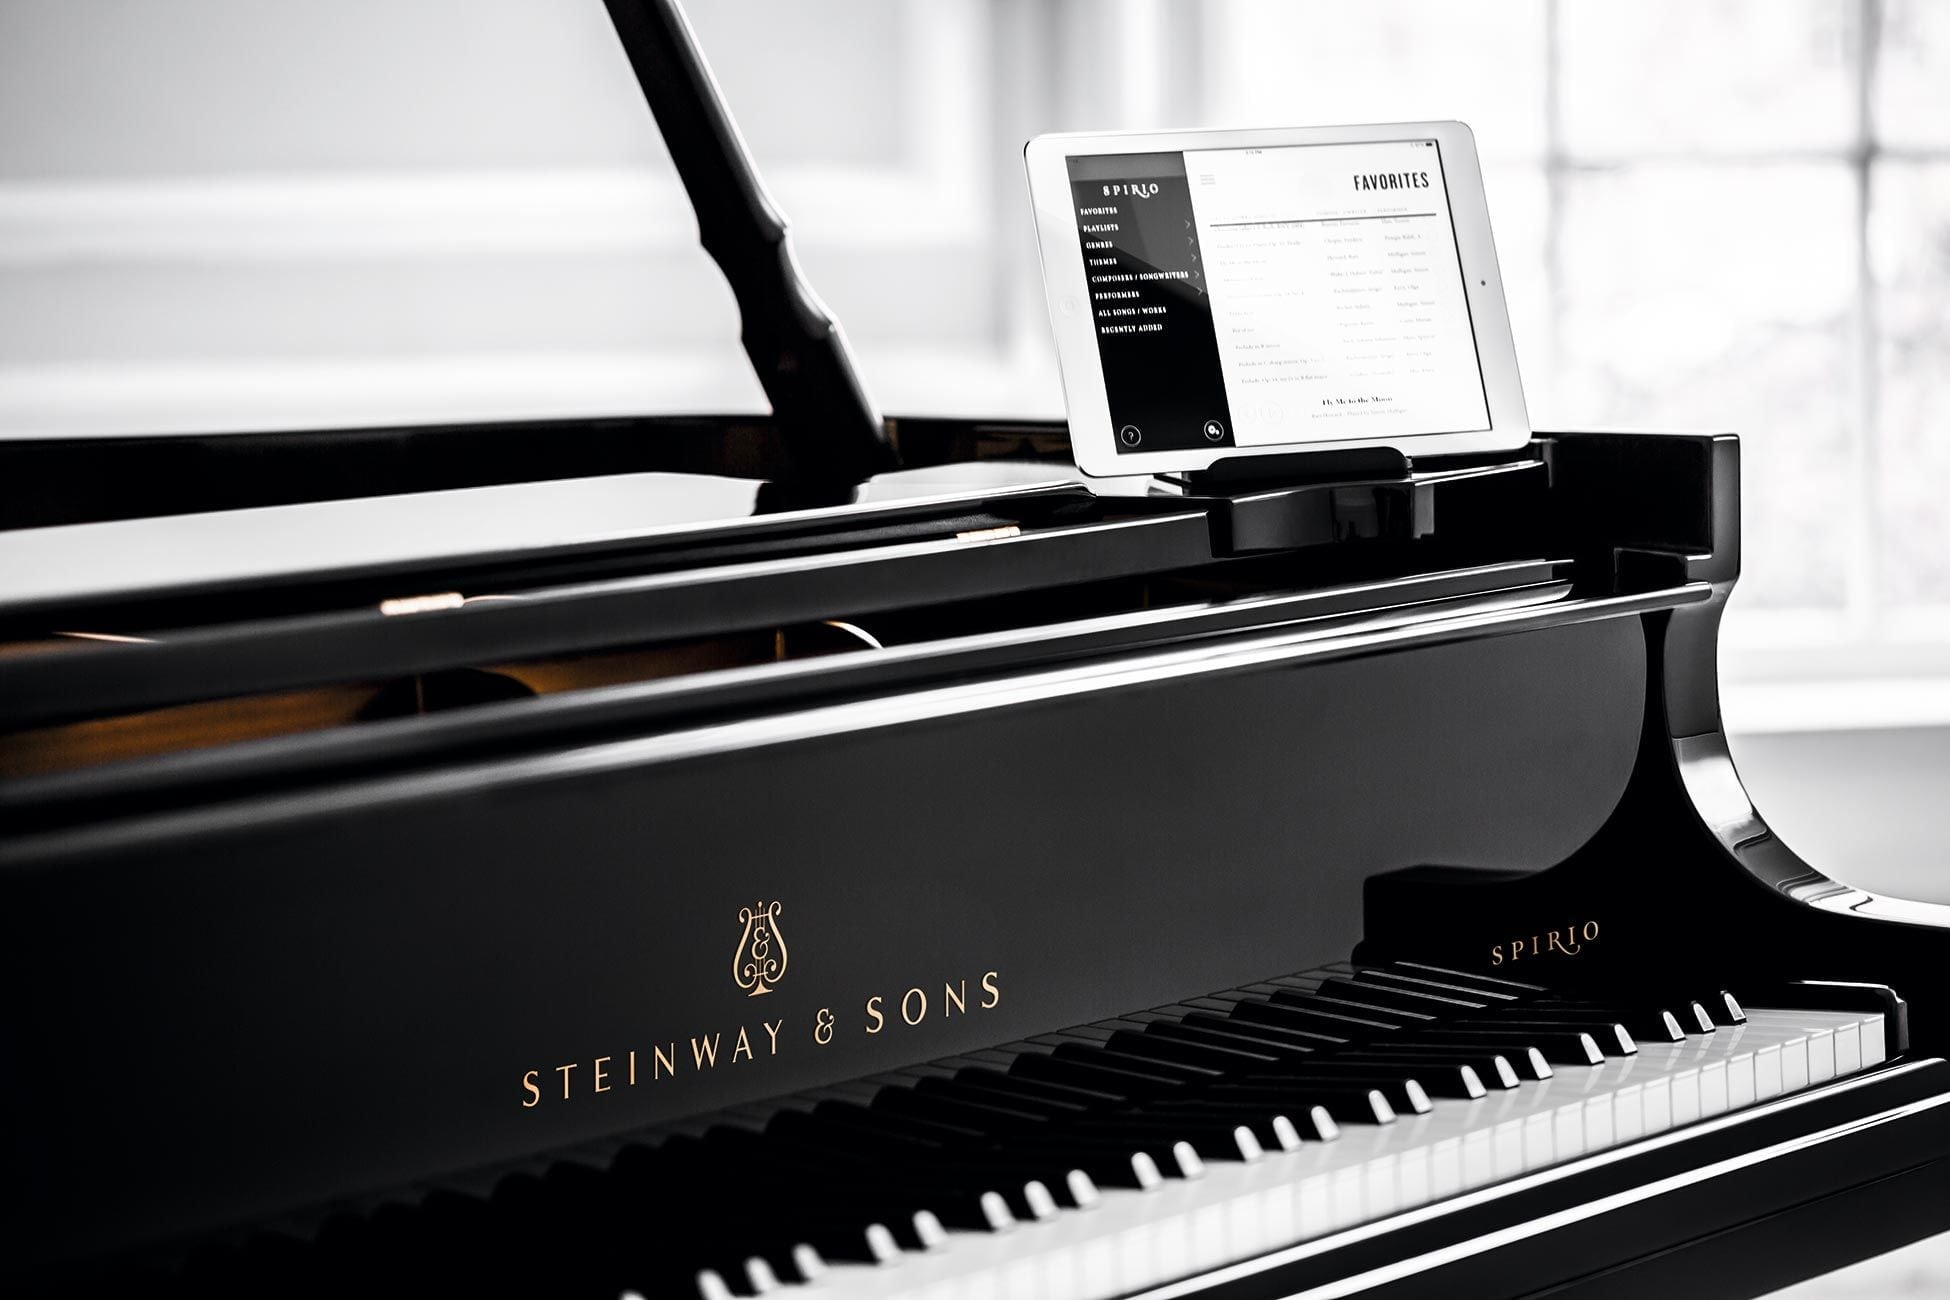 Steinway Spirio Grand Player Piano